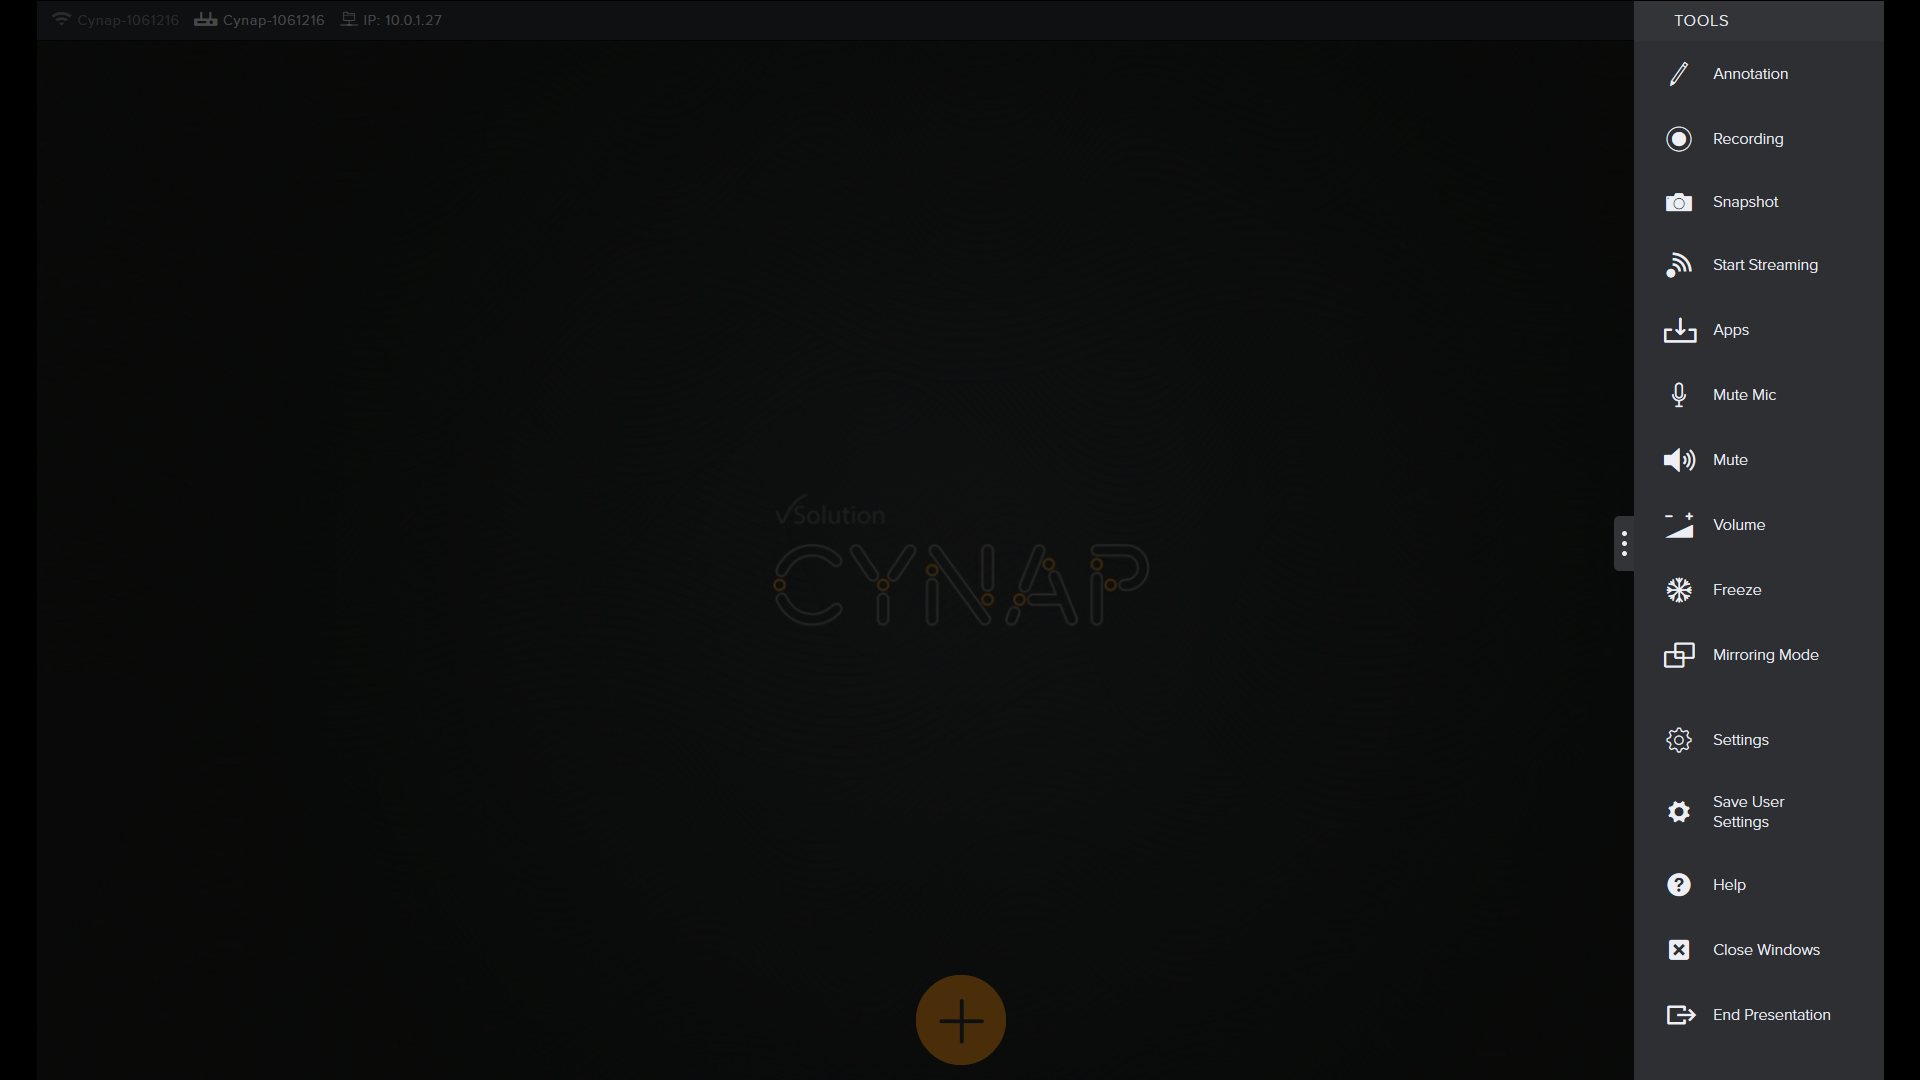 Cynap Toolbox Apps tab.